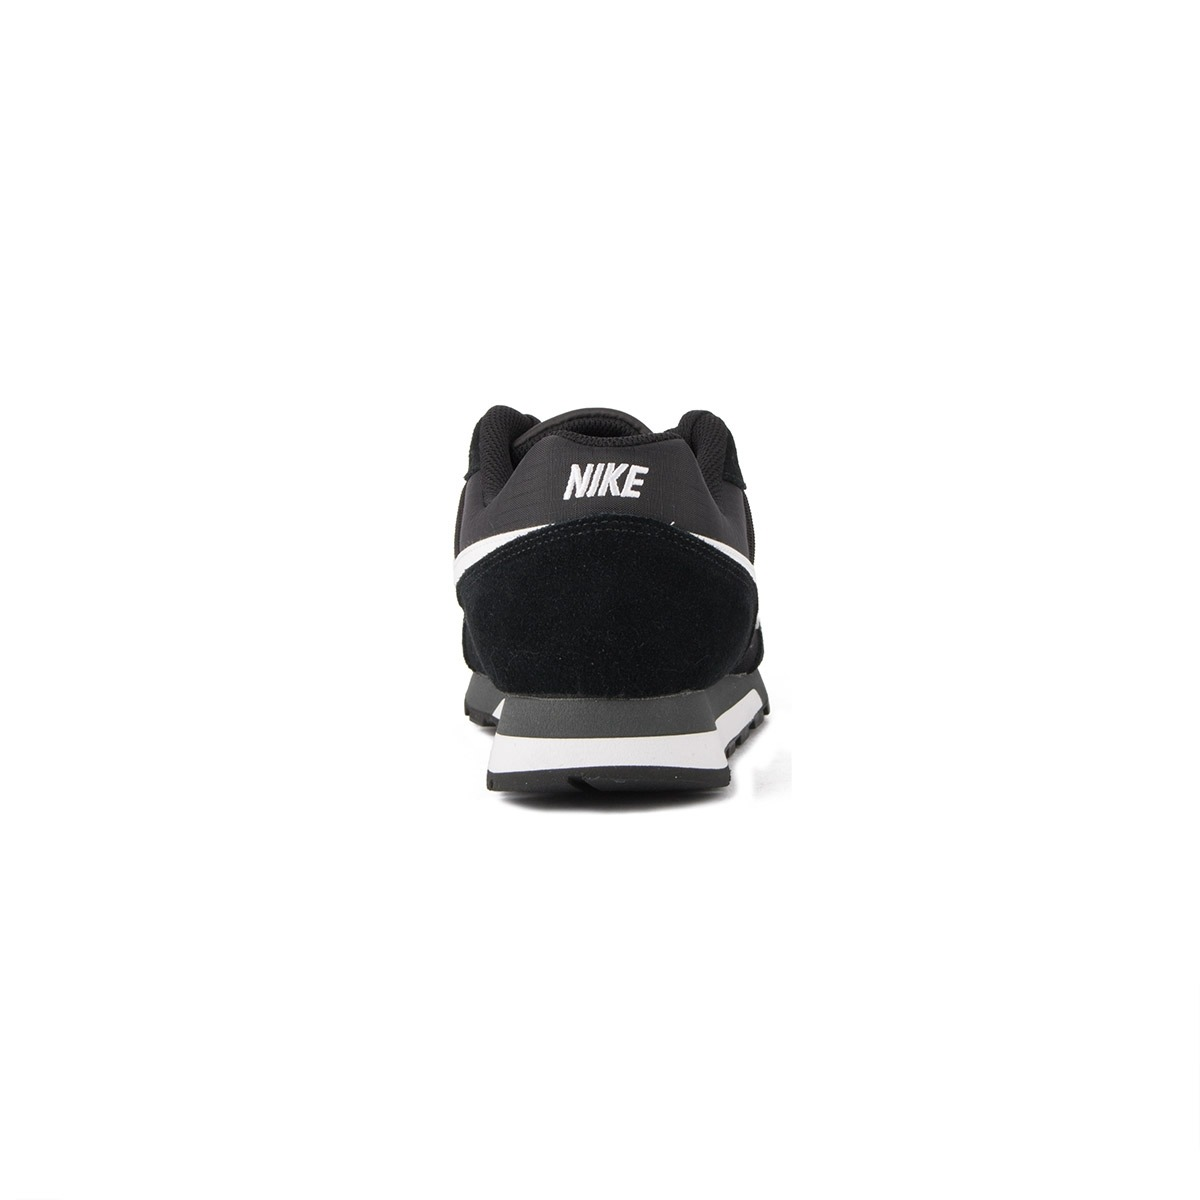 Nike MD Runner 2 Negro Black White Antracita Hombre